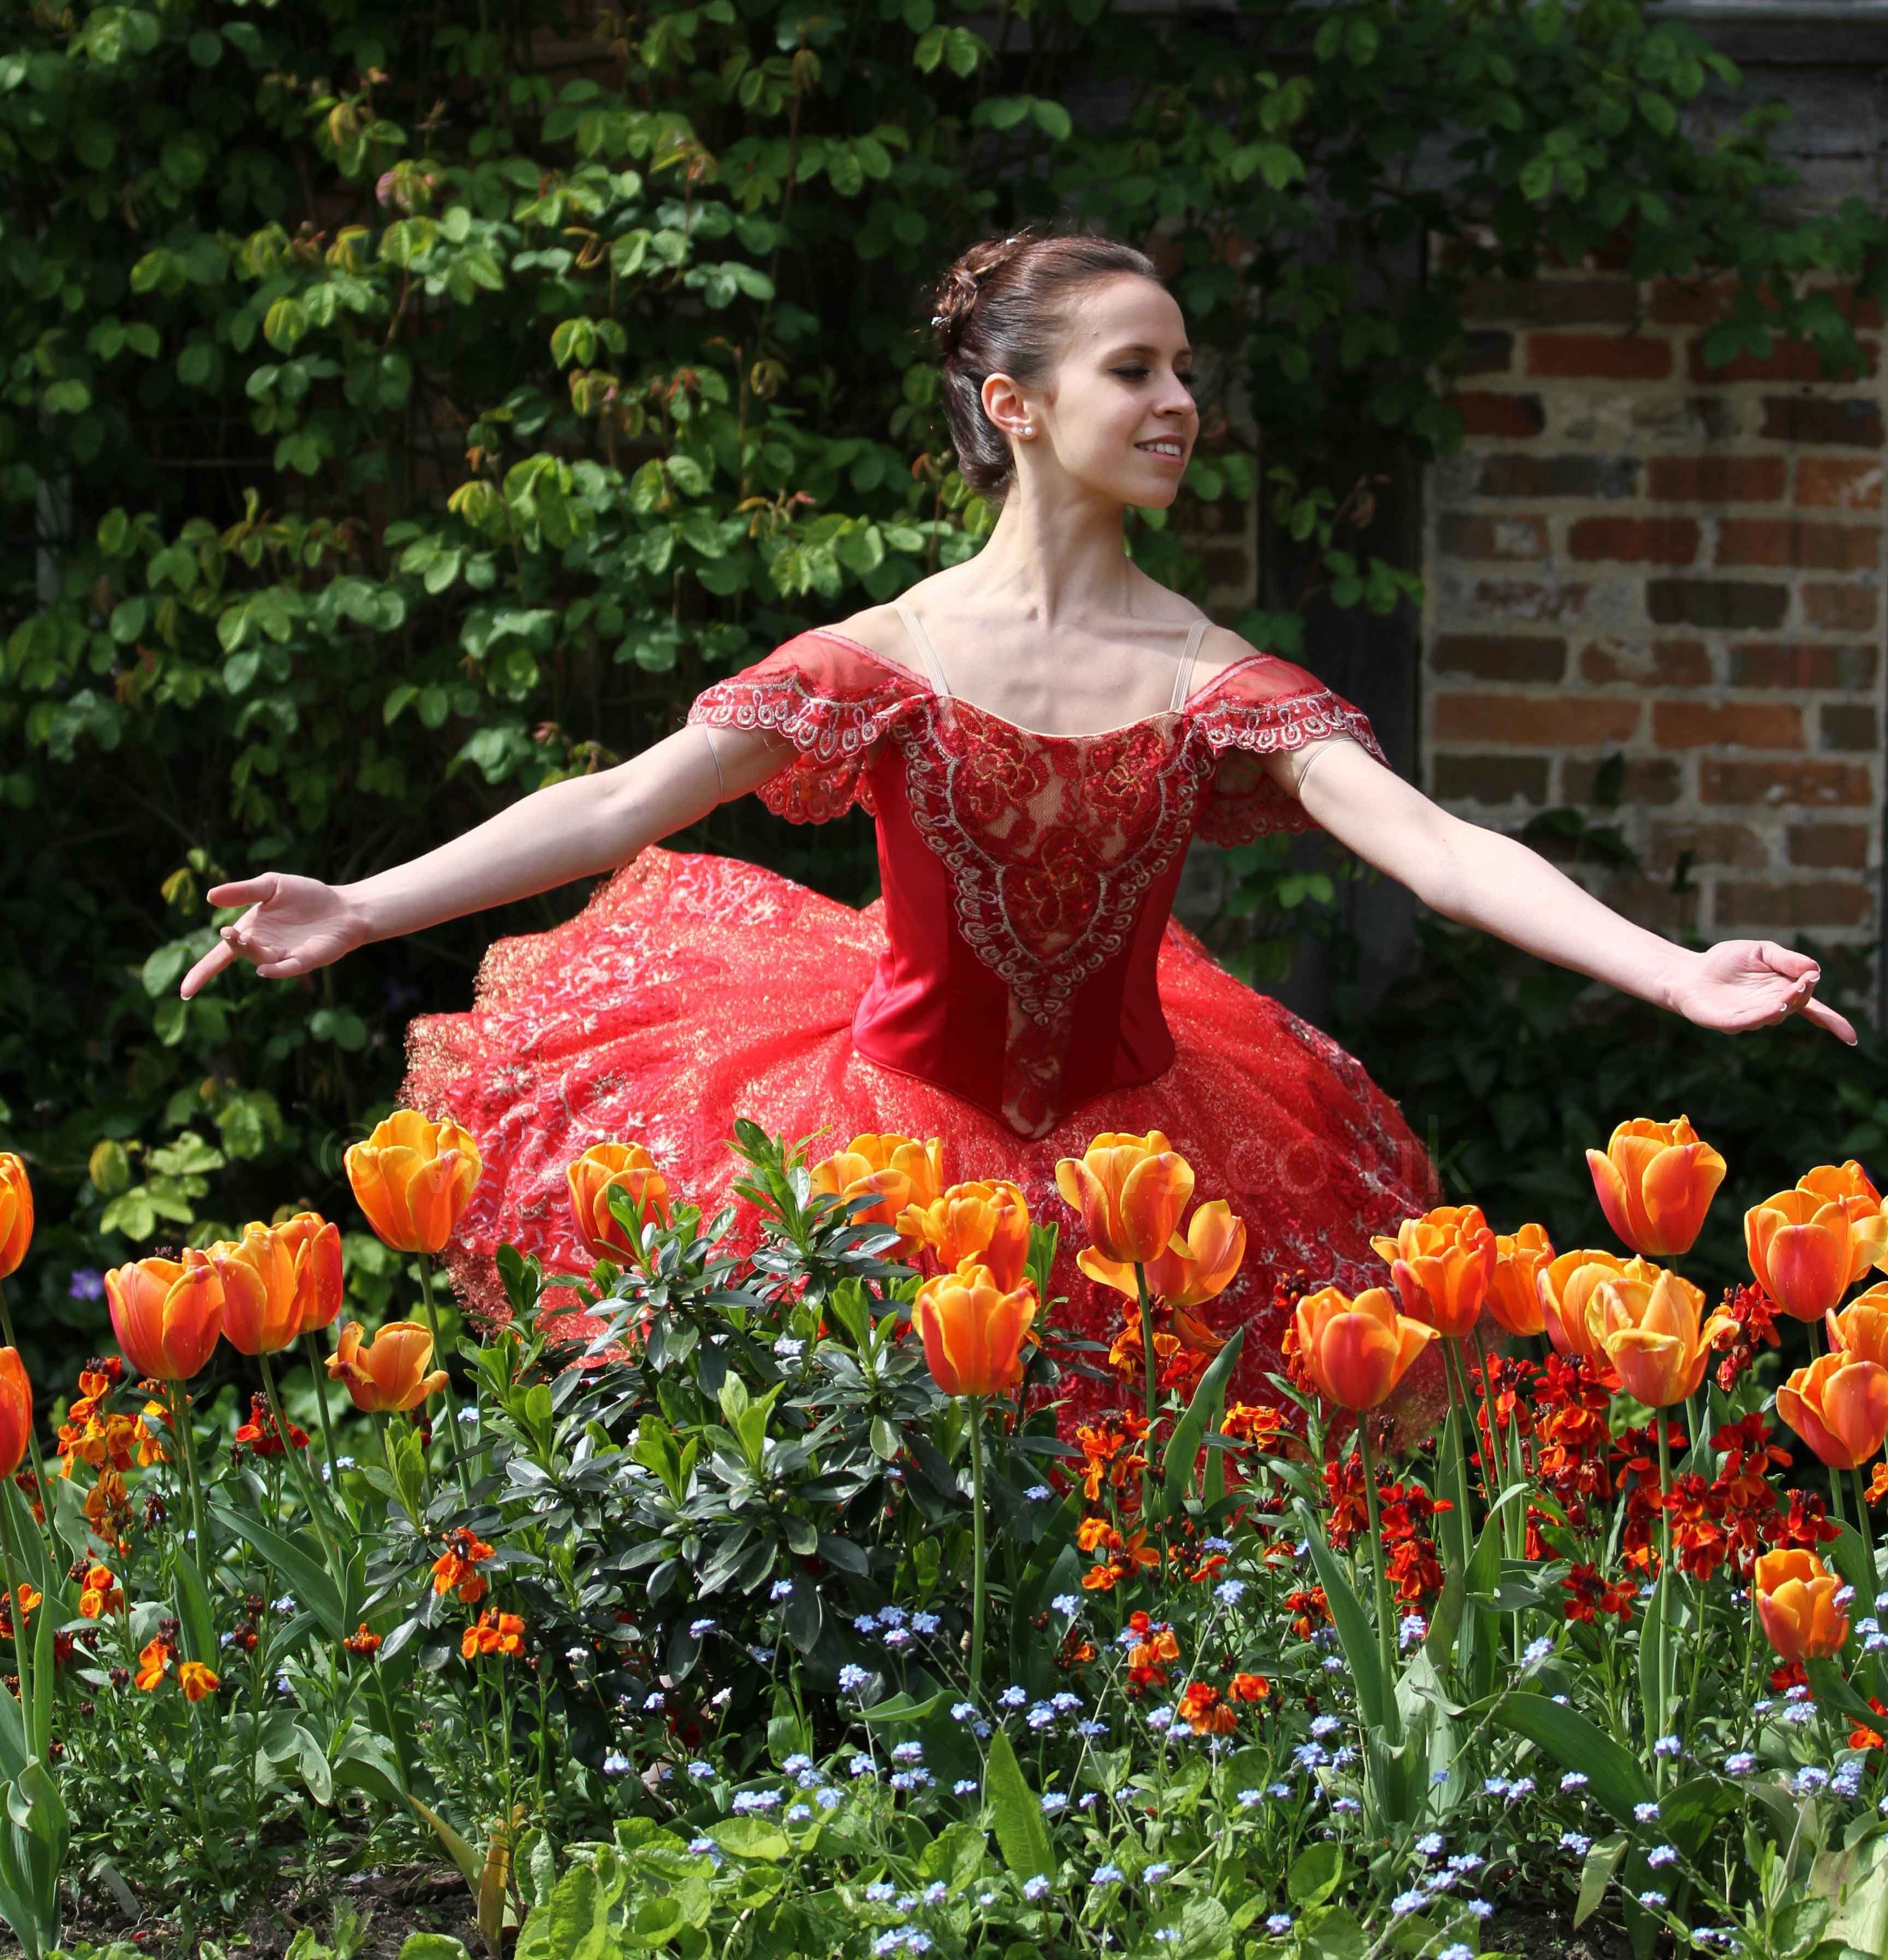 Prisca Bertoni photographed on location for Ballet News